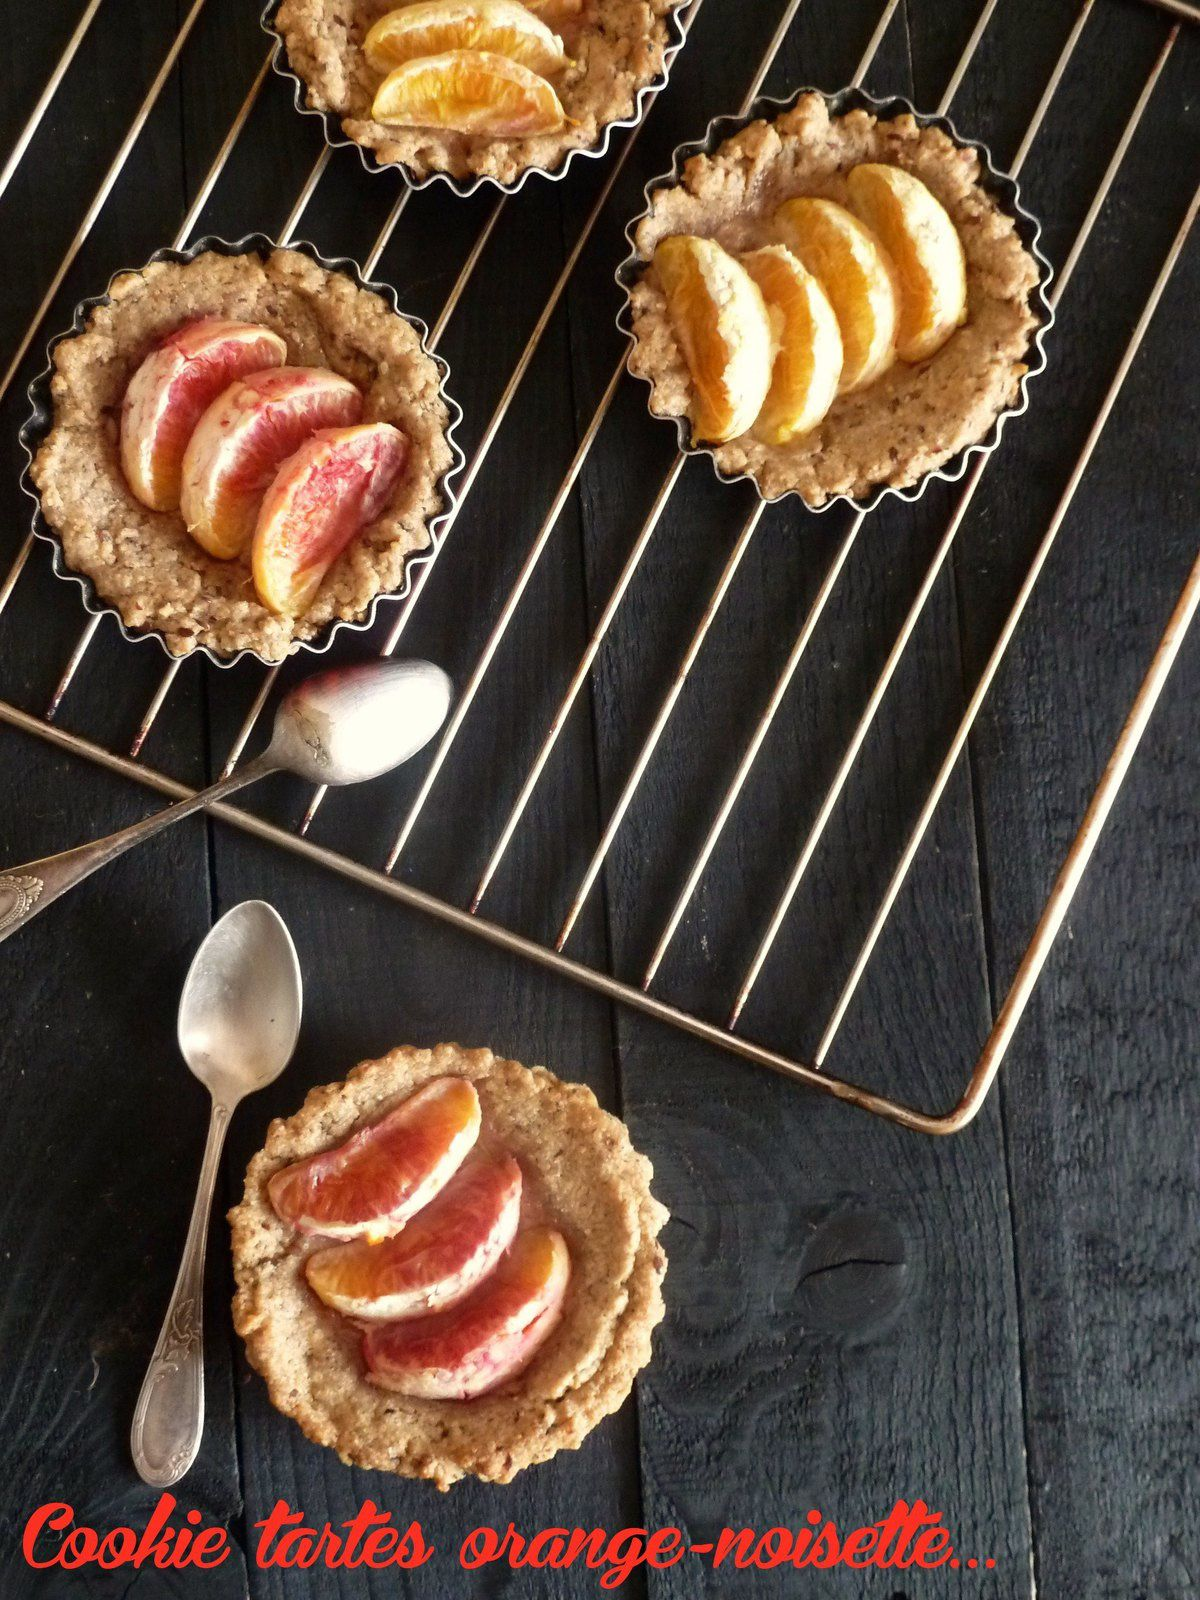 Cookies-tartes à la noisette et à l'orange